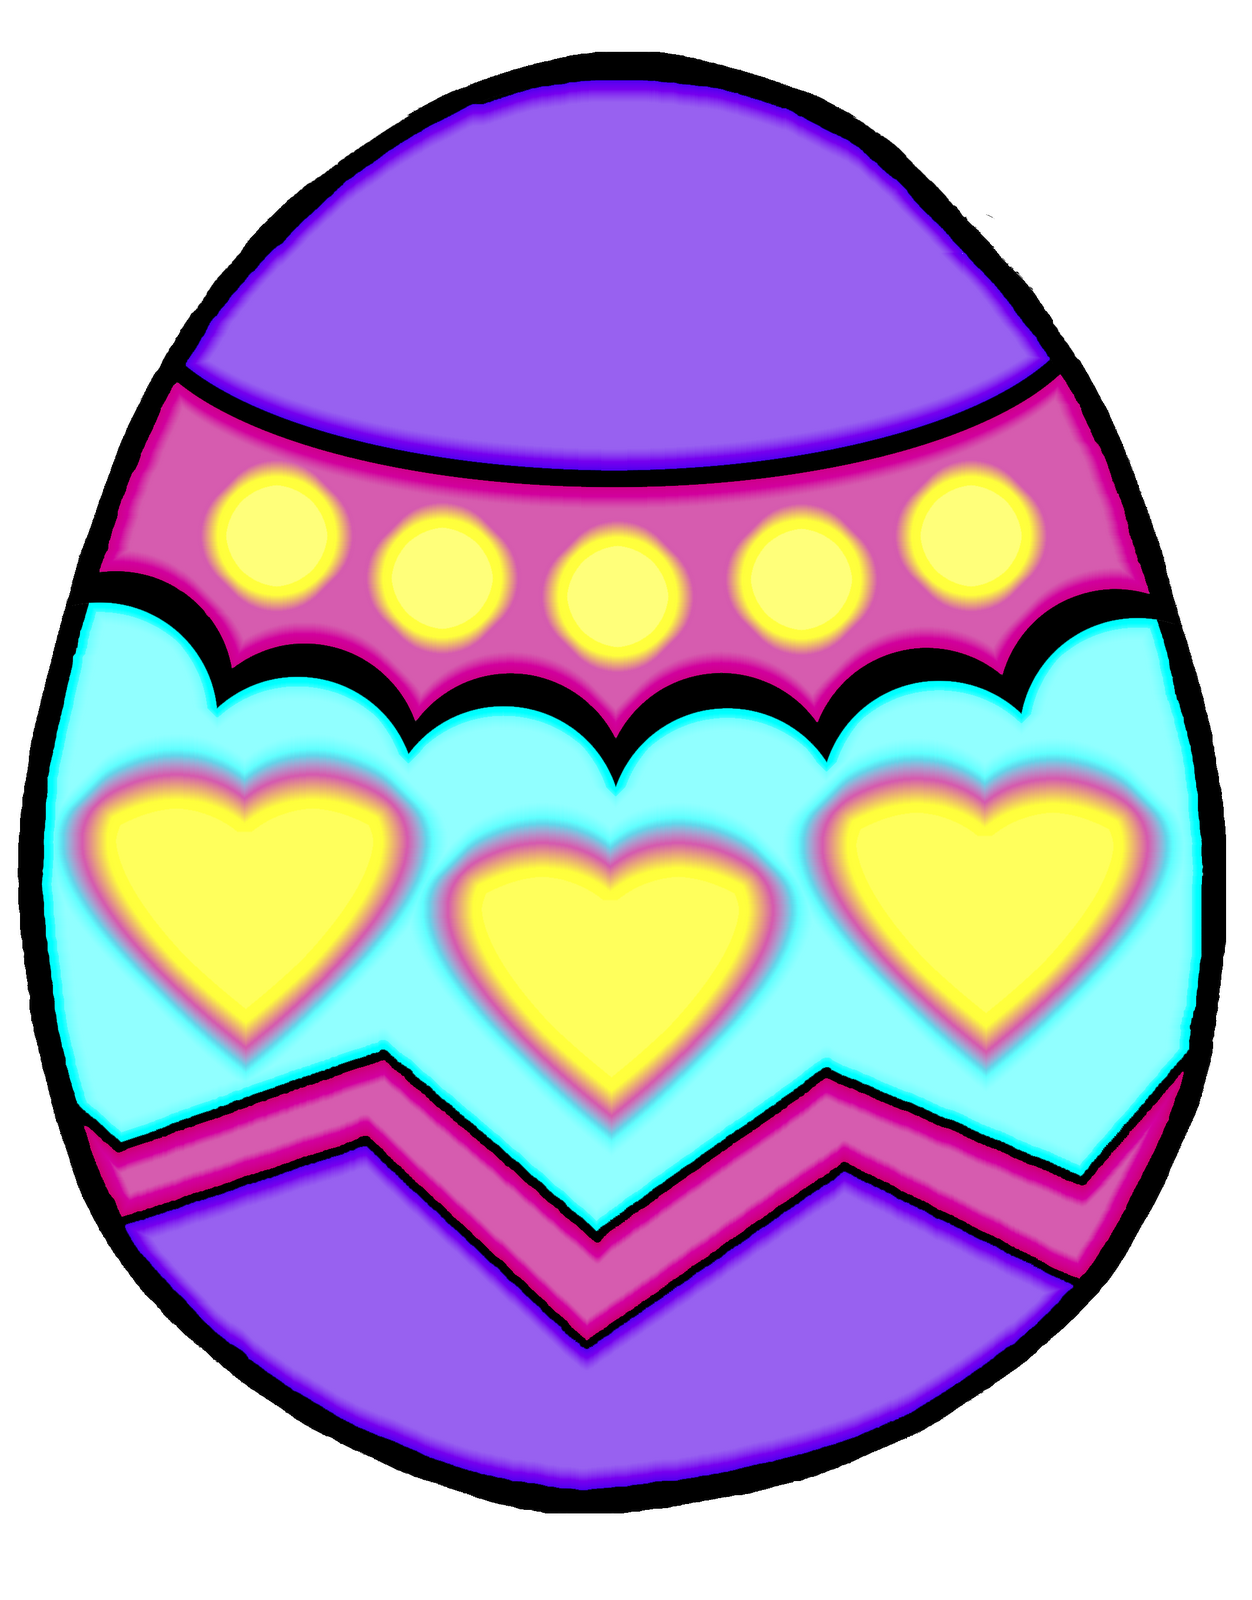 1252x1600 Easter Egg Pictures Clip Art Merry Christmas And Happy New Year 2018